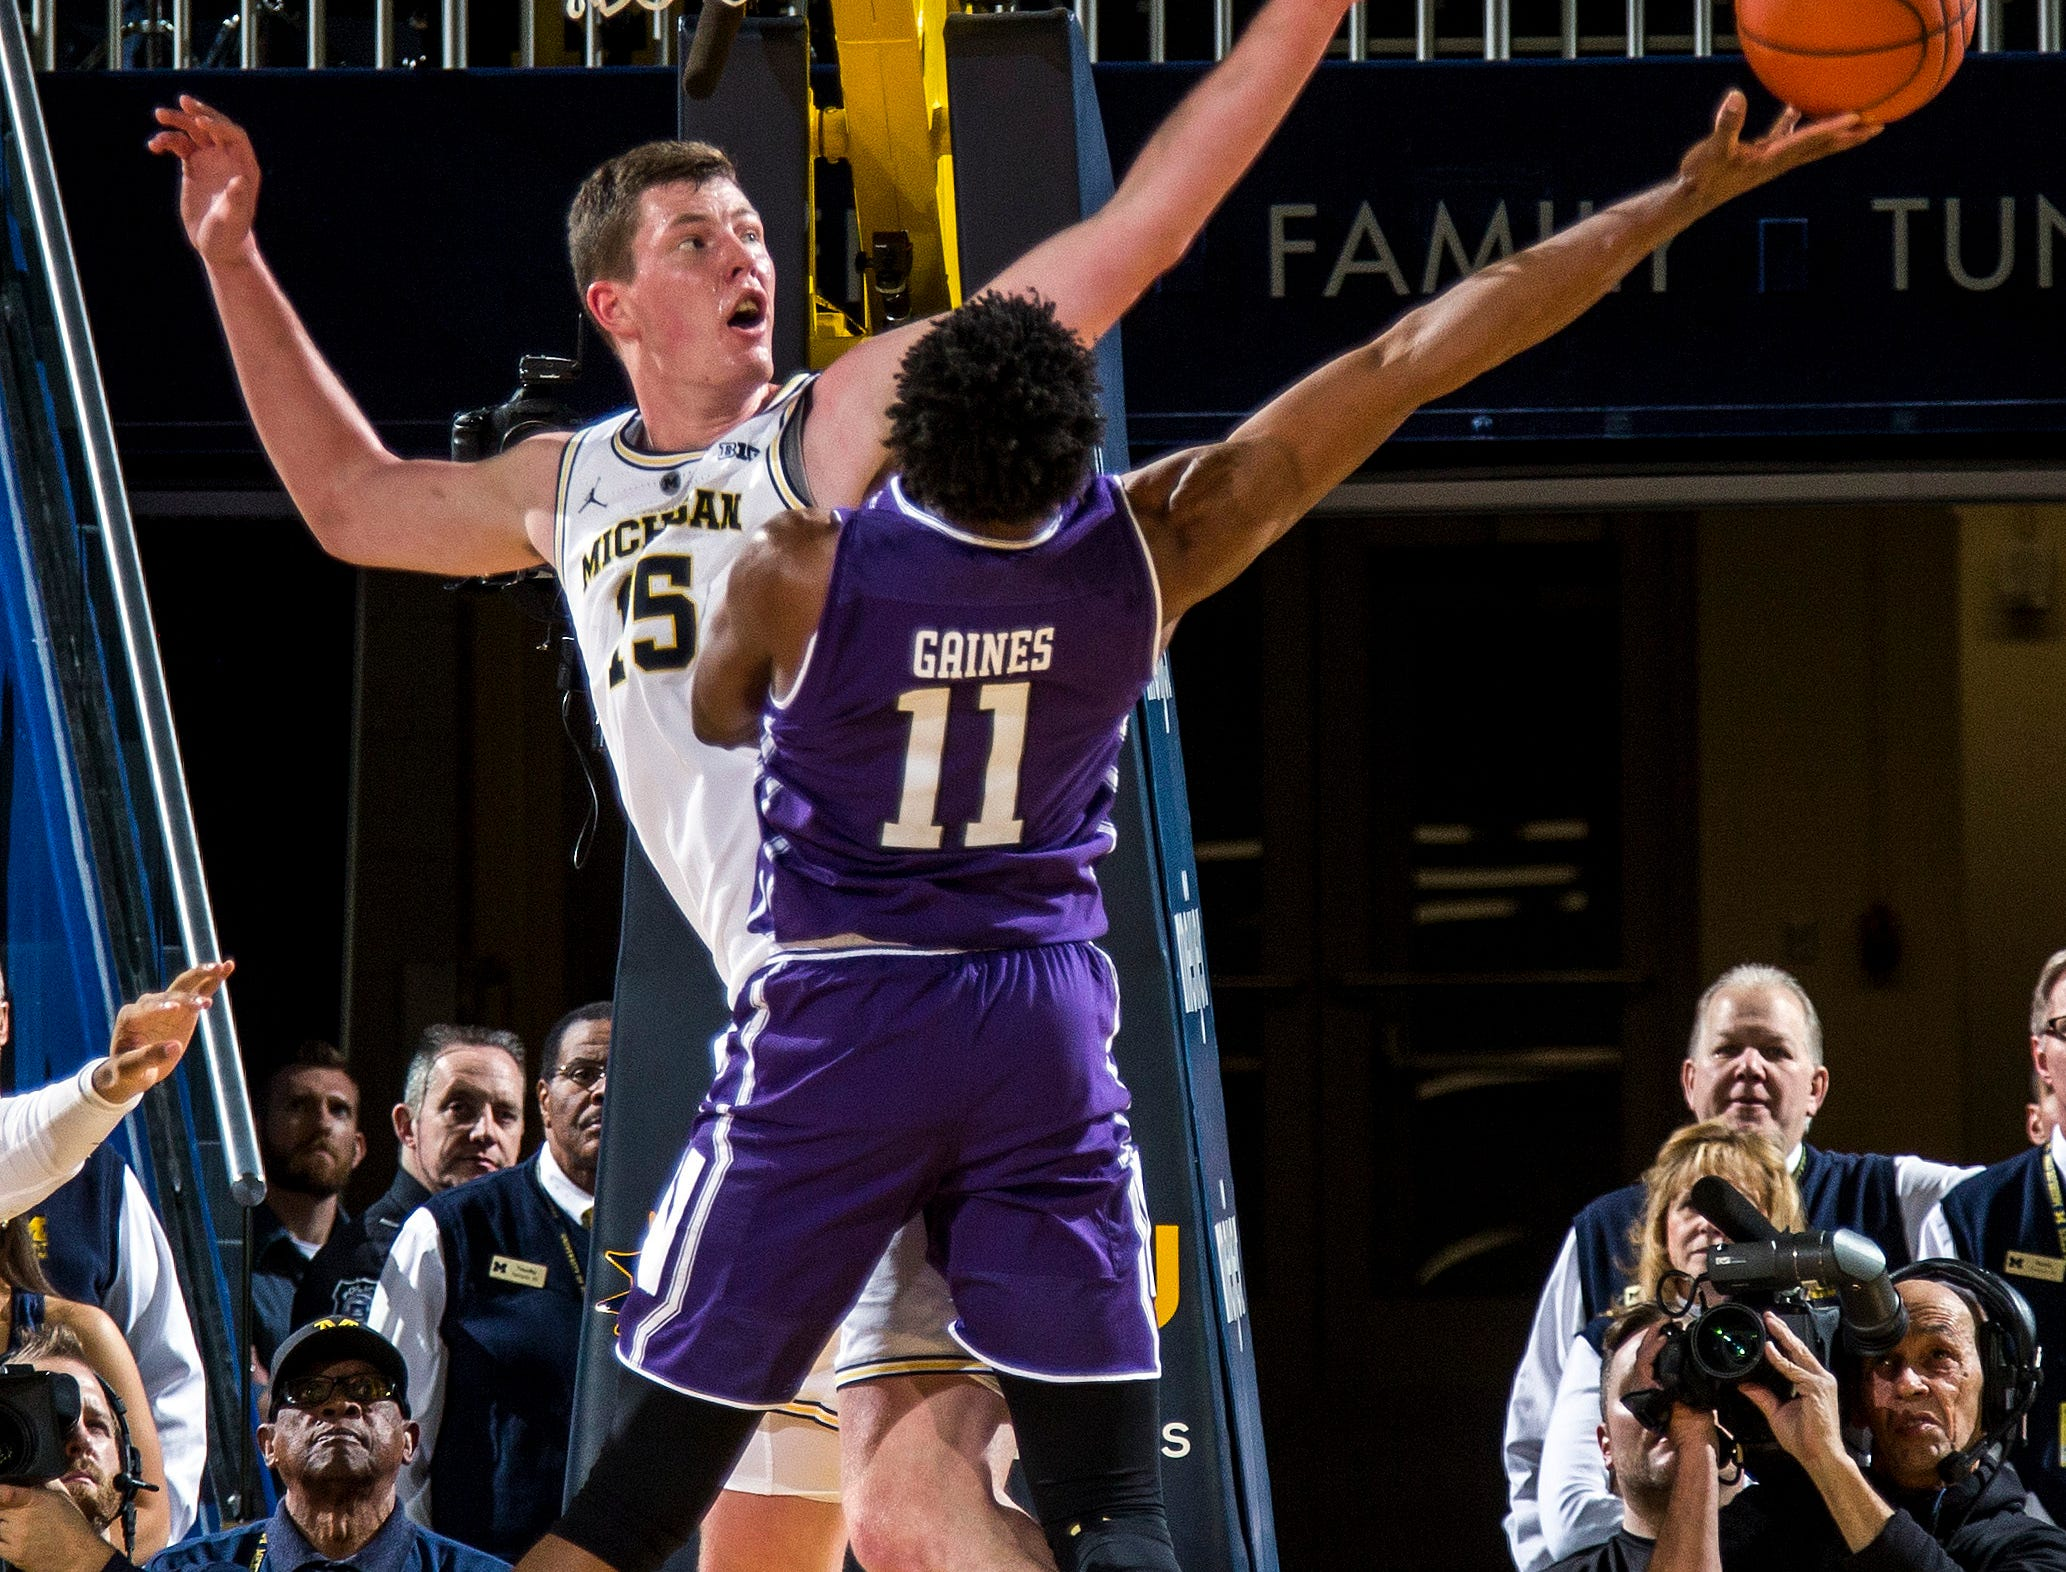 Michigan center Jon Teske, top left, defends the basket from Northwestern guard Anthony Gaines (11) in the second half of an NCAA college basketball game in Ann Arbor, Mich., Sunday, Jan. 13, 2019. Michigan won 80-60. (AP Photo/Tony Ding)